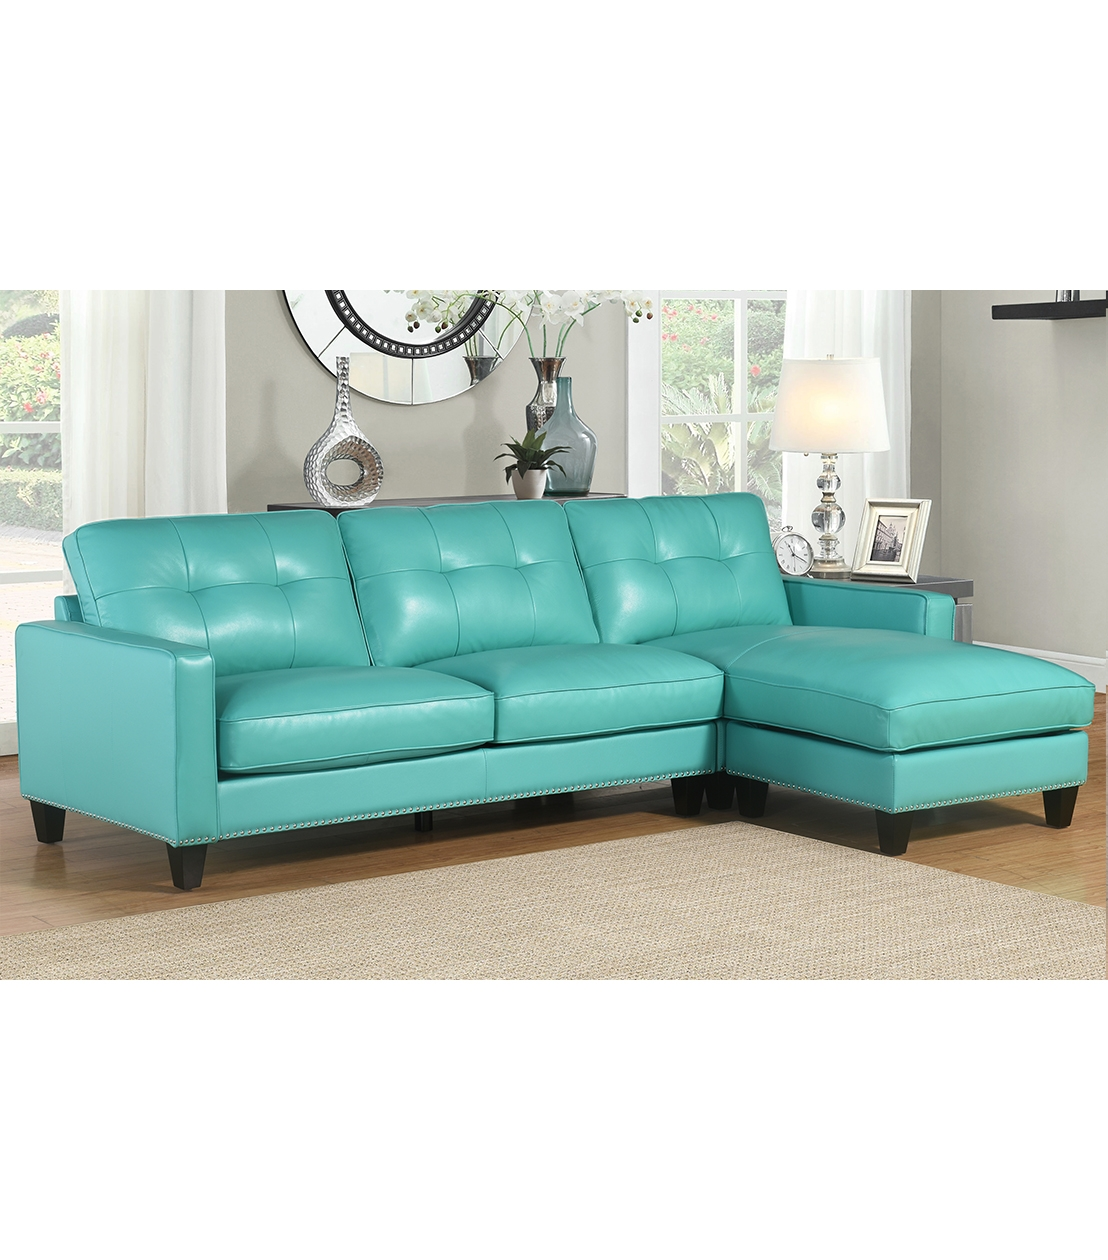 Sectionals Metropolitan Leather Sectional Intended For Abbyson Sectional Sofa (Image 14 of 15)